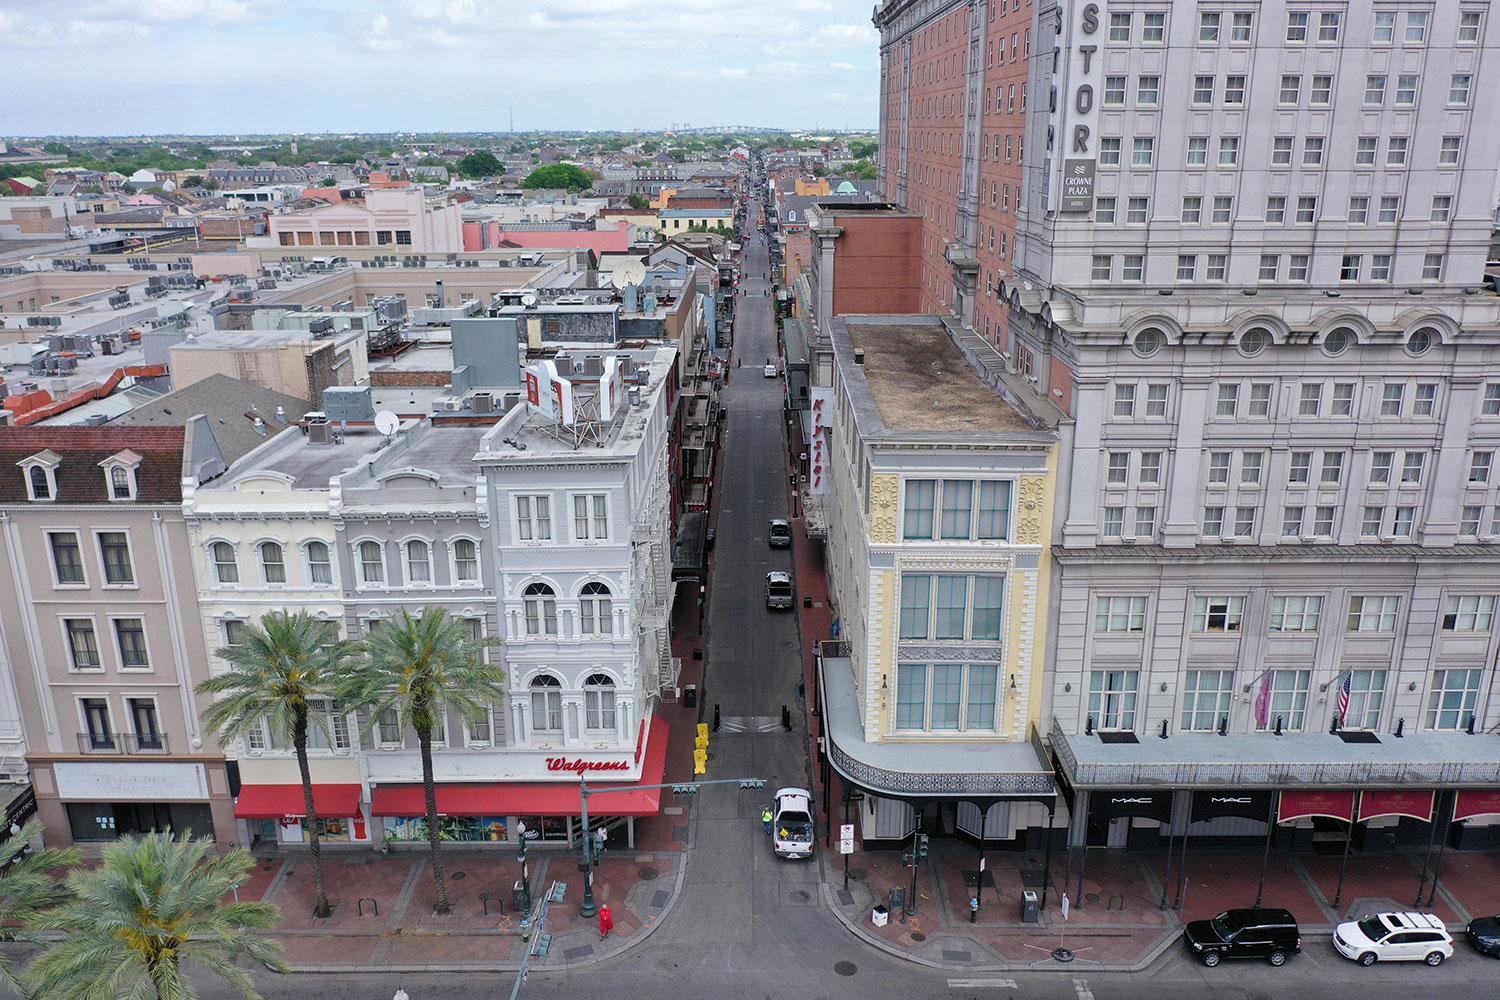 Normally bustling tourist mecca Bourbon Street lies deserted in the early afternoon during shelter in place orders to slow the spread of coronavirus in a photograph of New Orleans on March 27, 2020. The photo shows a view of the entrance to Bourbon street, which would normally be packed with tourists and other people, almost completely empty. REUTERS/Drone Base